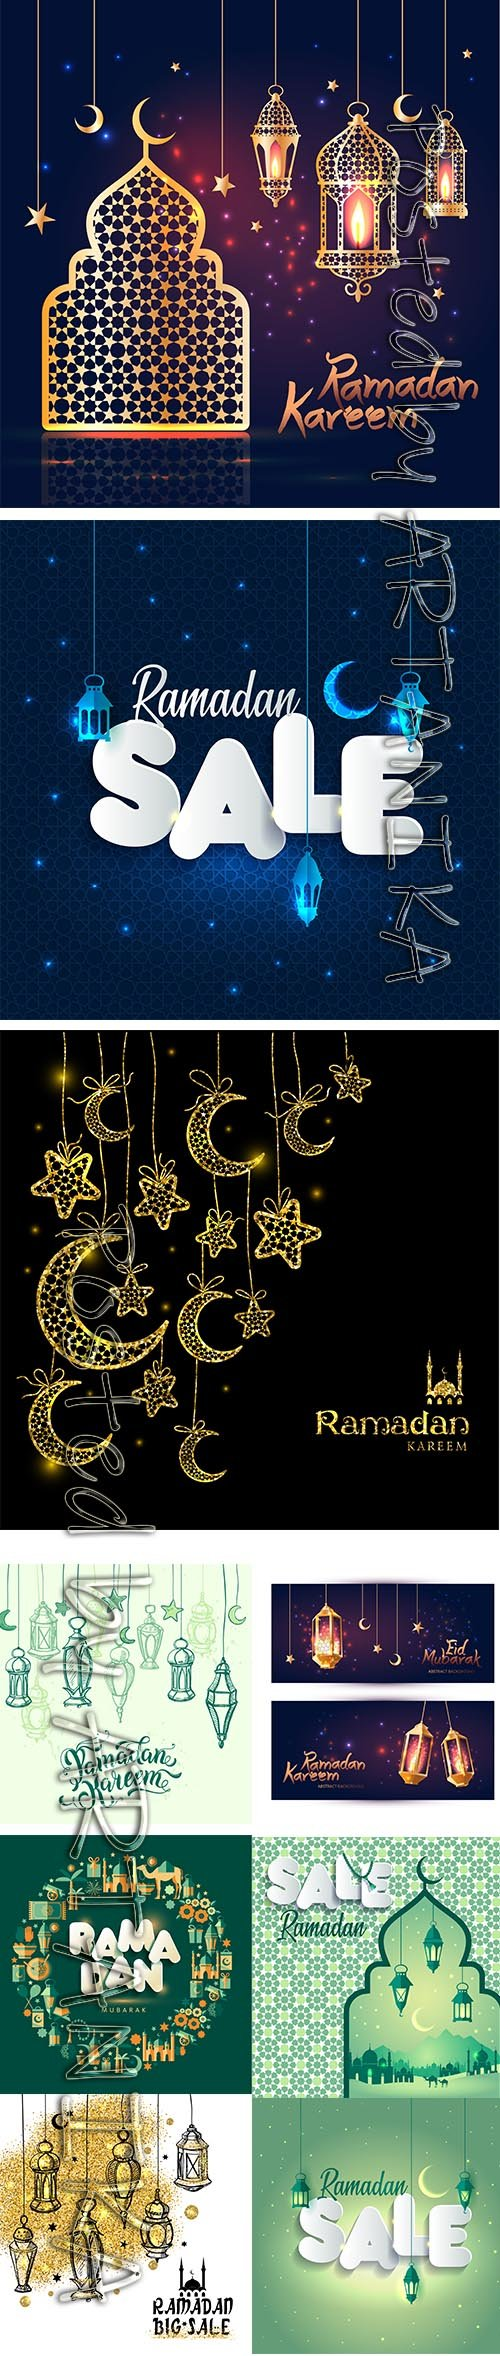 Ramadan Kareem Greting Illustration Vector Set